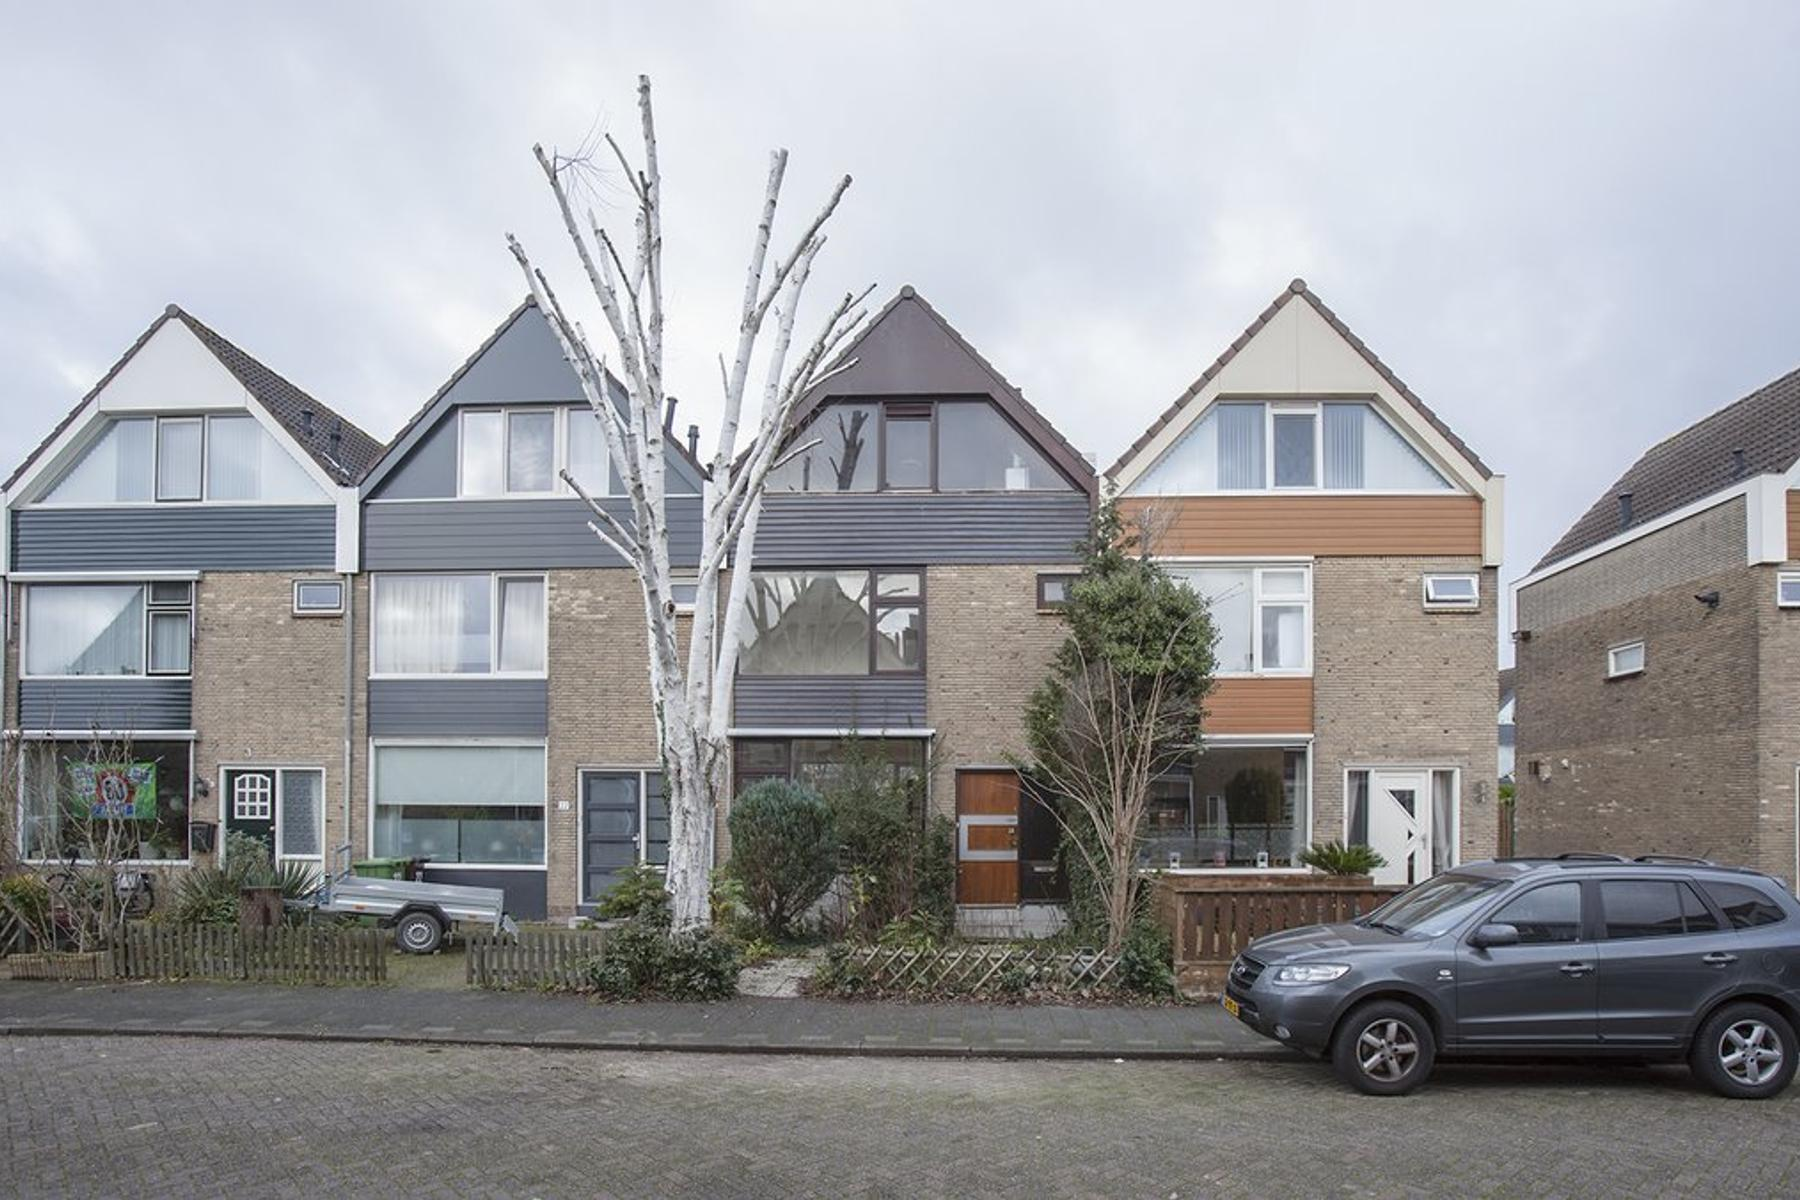 Prinsenstraat 20 in Ridderkerk 2983 CL